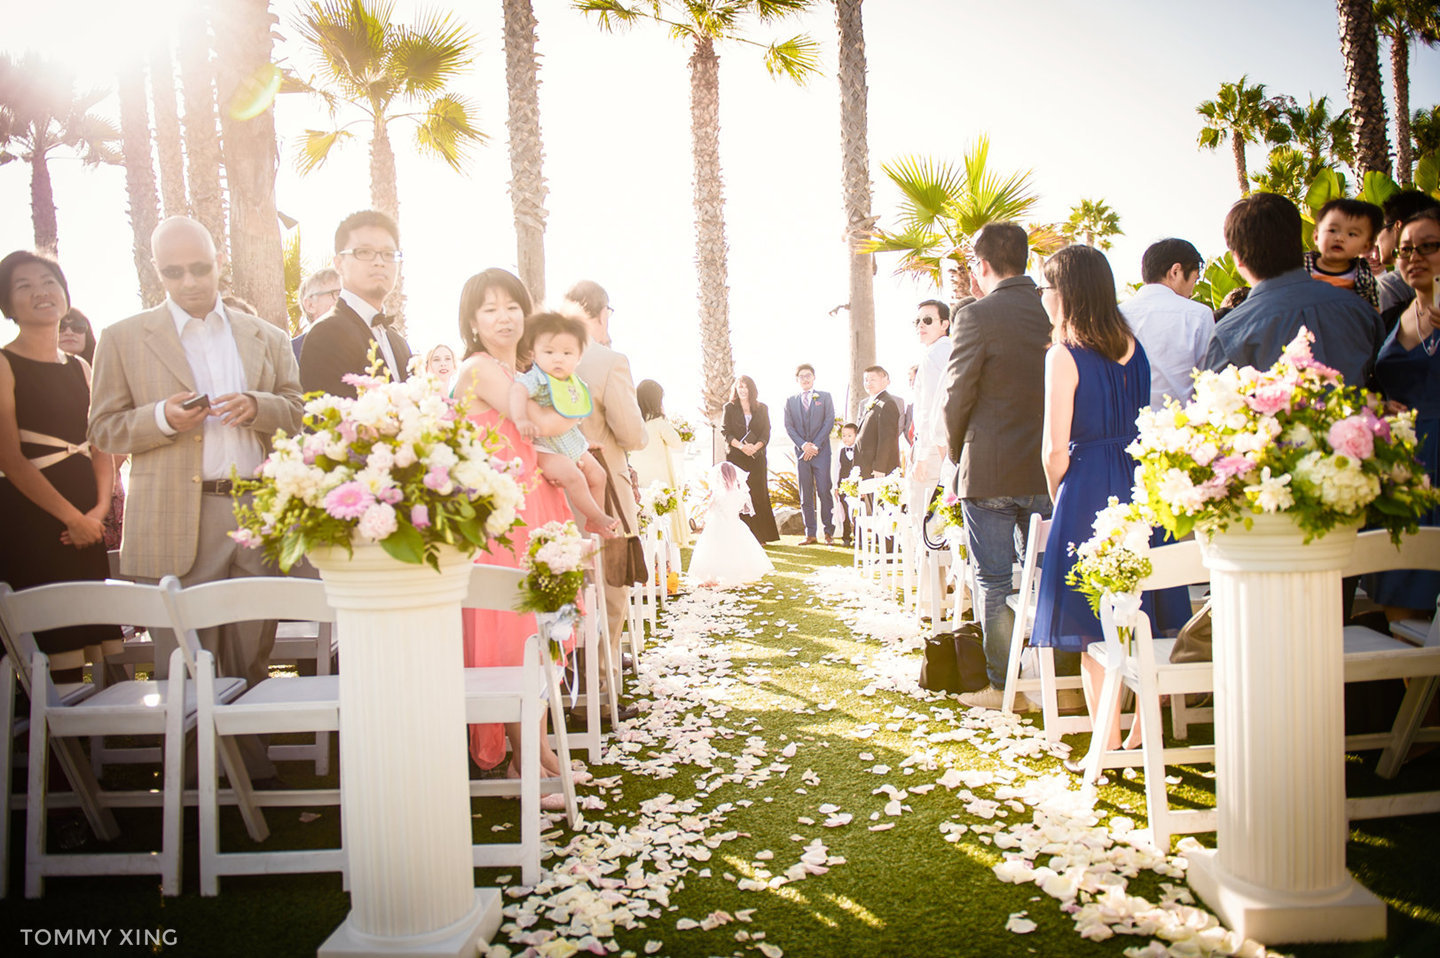 Paradise Point Resort Wedding Xiaolu & Bin San Diego 圣地亚哥婚礼摄影跟拍 Tommy Xing Photography 洛杉矶婚礼婚纱照摄影师 103.jpg